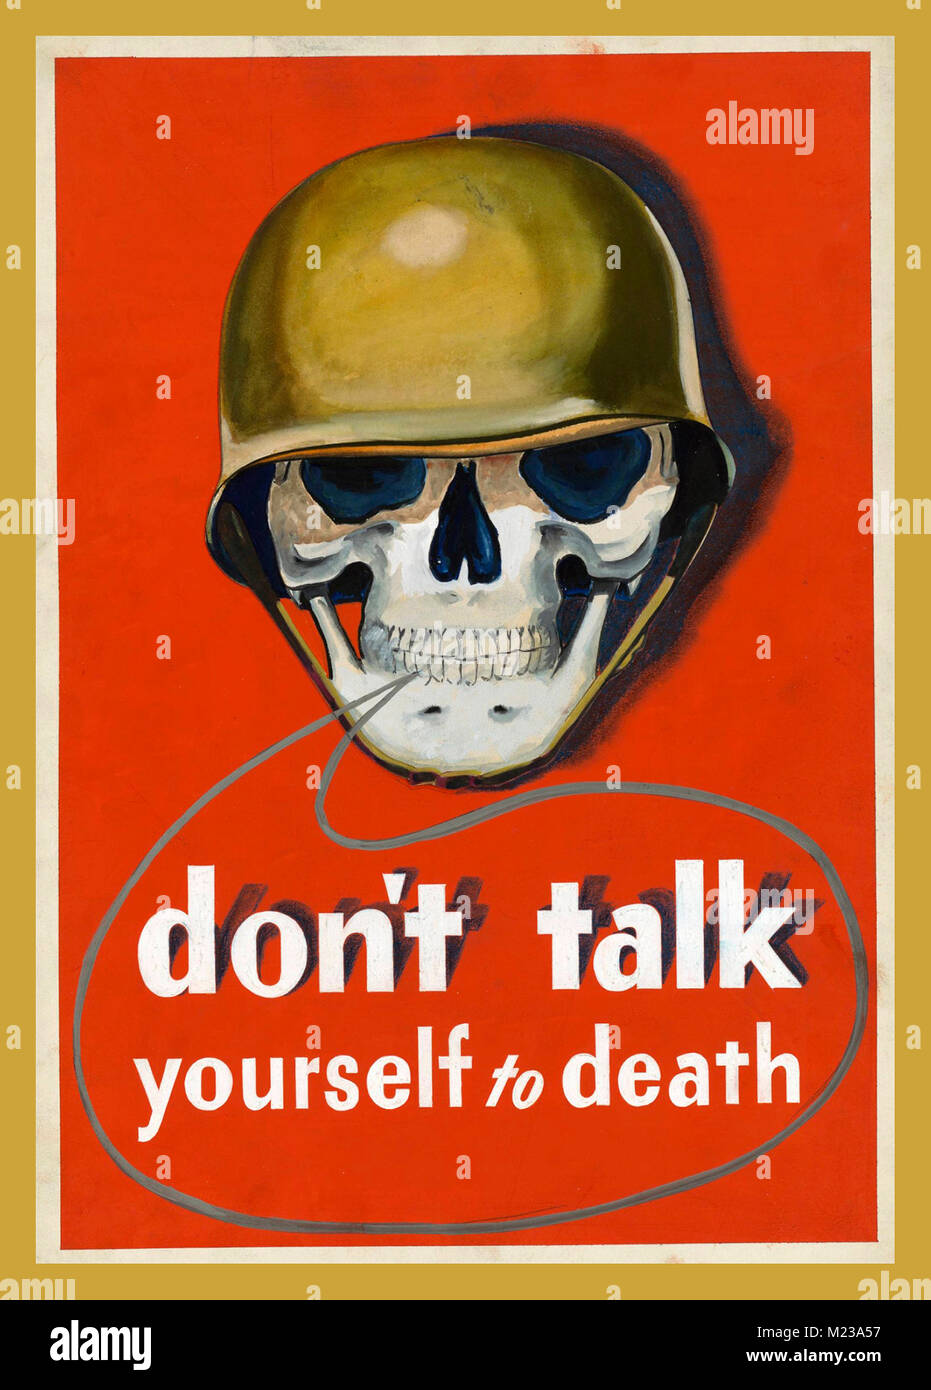 1940's WW2 US Army cautionary propaganda poster 'Don't talk Yourselves to Death' Giving secrets - Stock Image